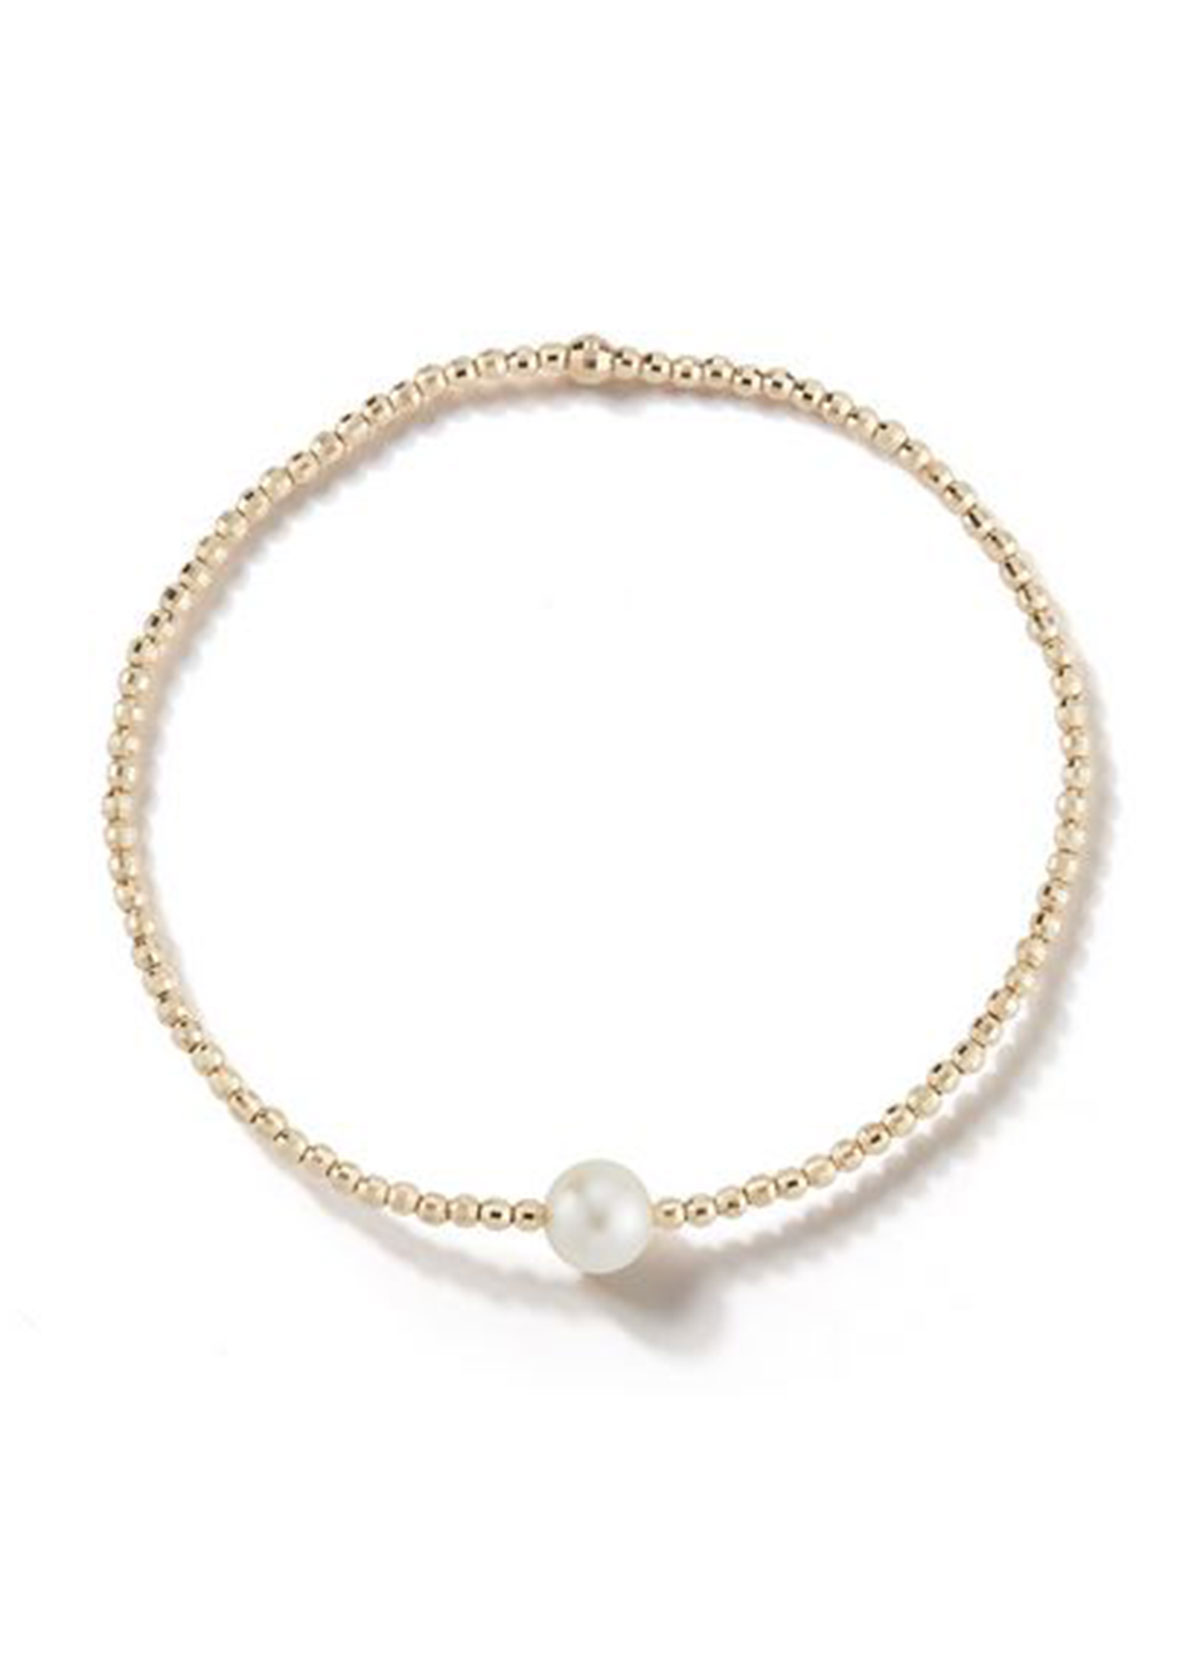 Mizuki Accessories 14K GOLD SINGLE-PEARL BRACELET